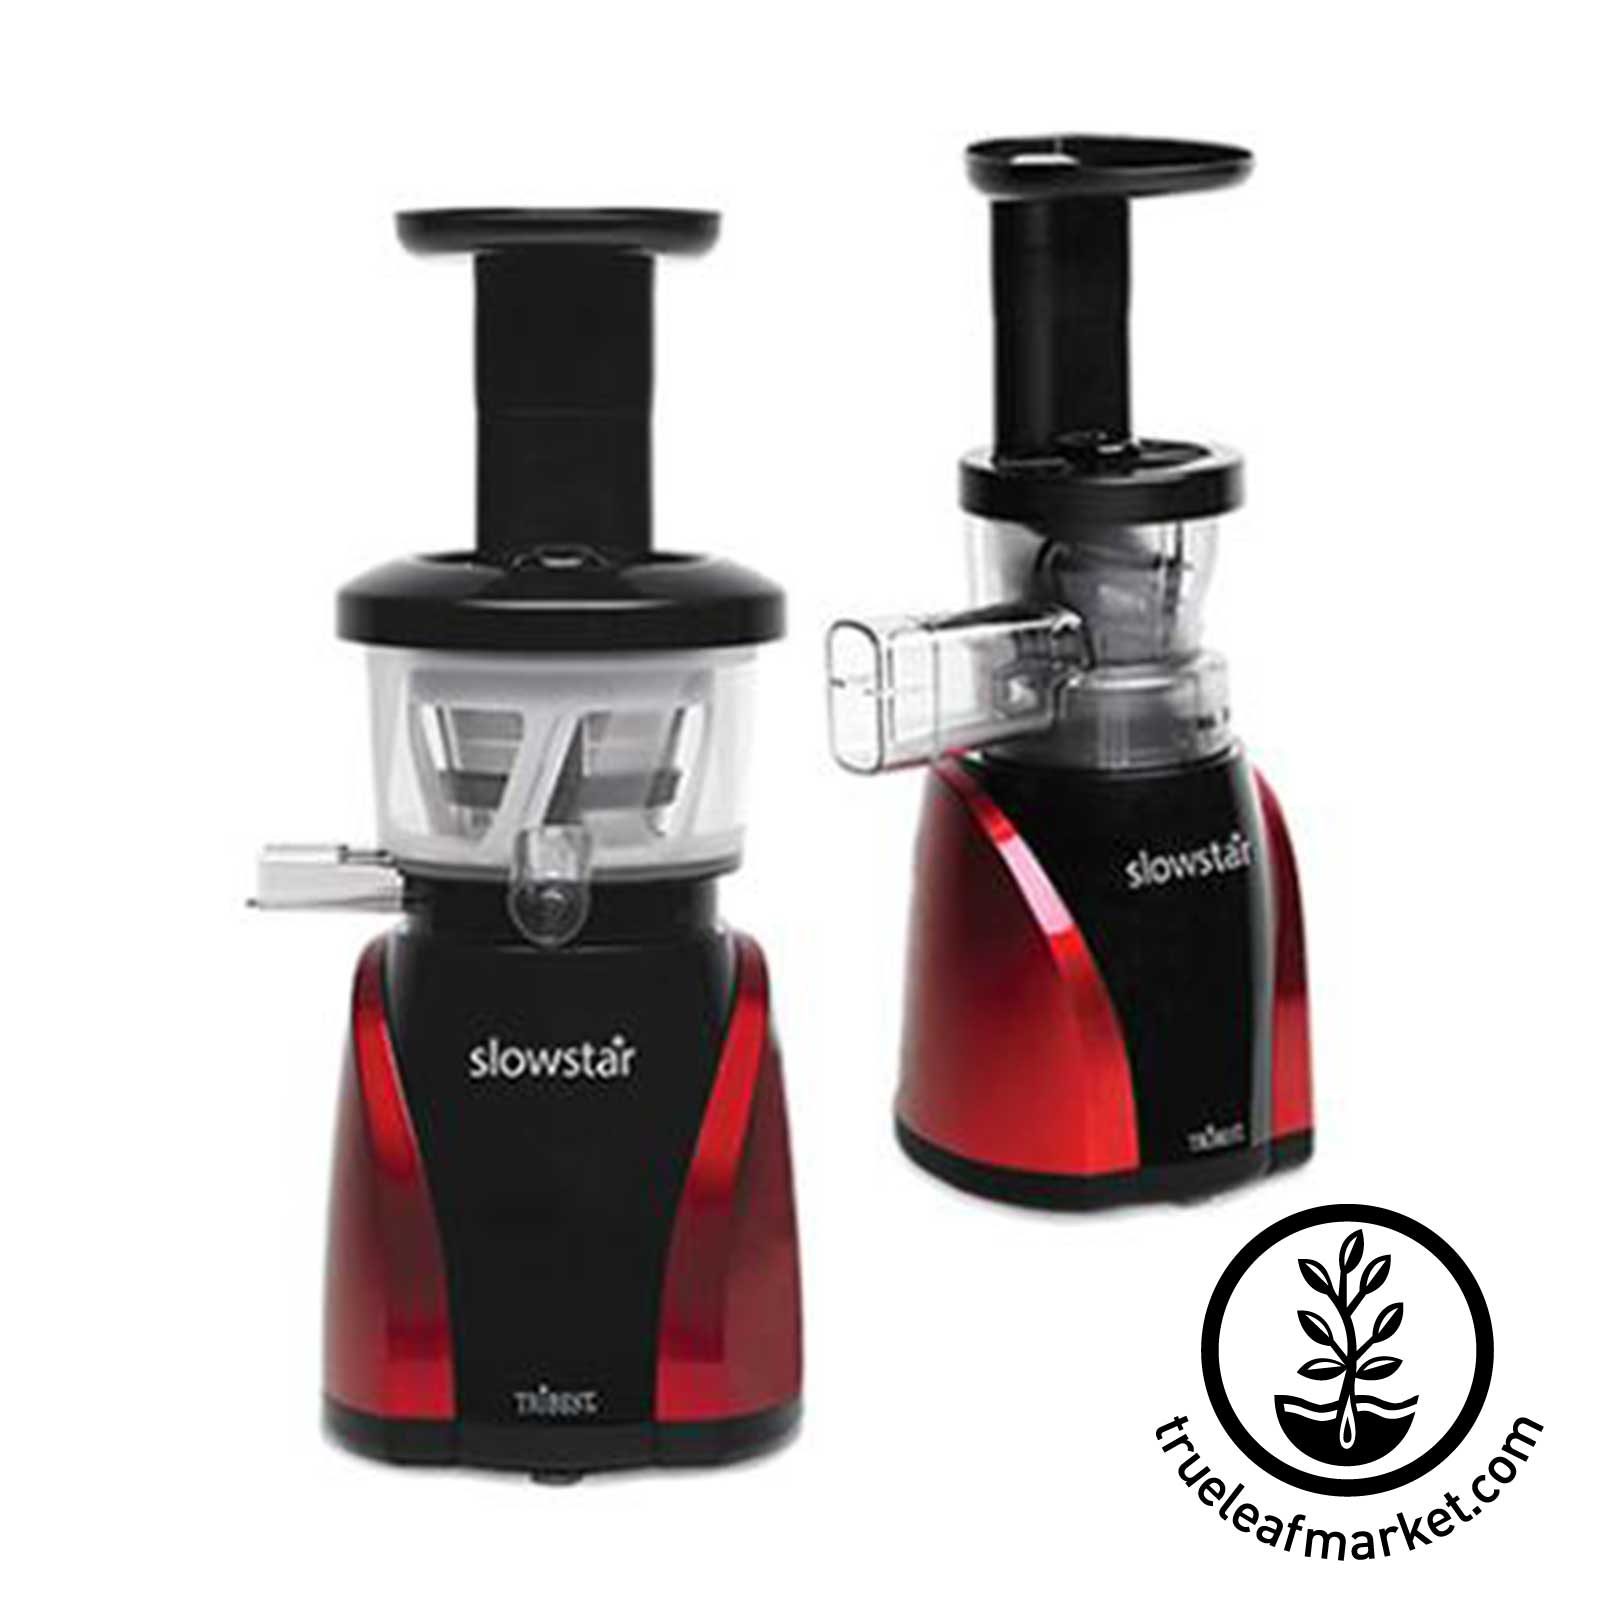 Slowstar Masticating Juicer : Tribest Masticating vertical Slow Juicer Model SW-2000